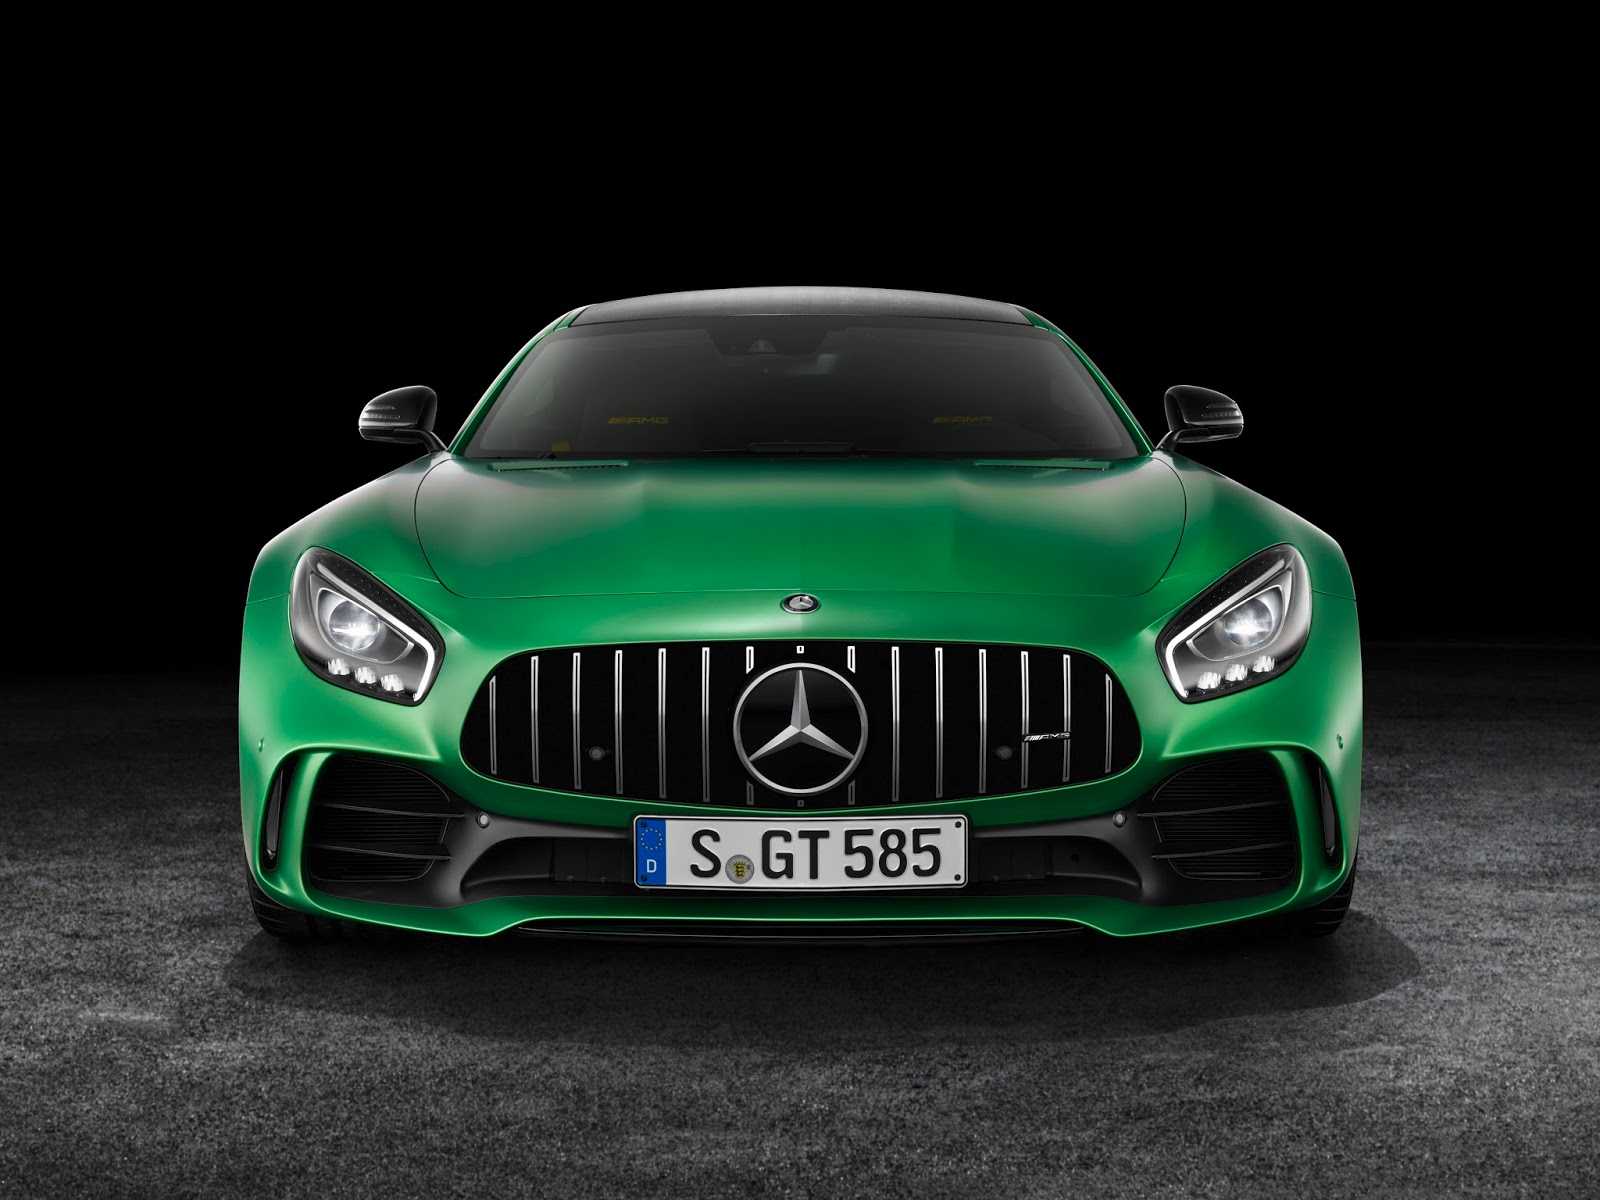 Mercedes-AMG GT R: Full Press Release and Photos - Moto Arigato on